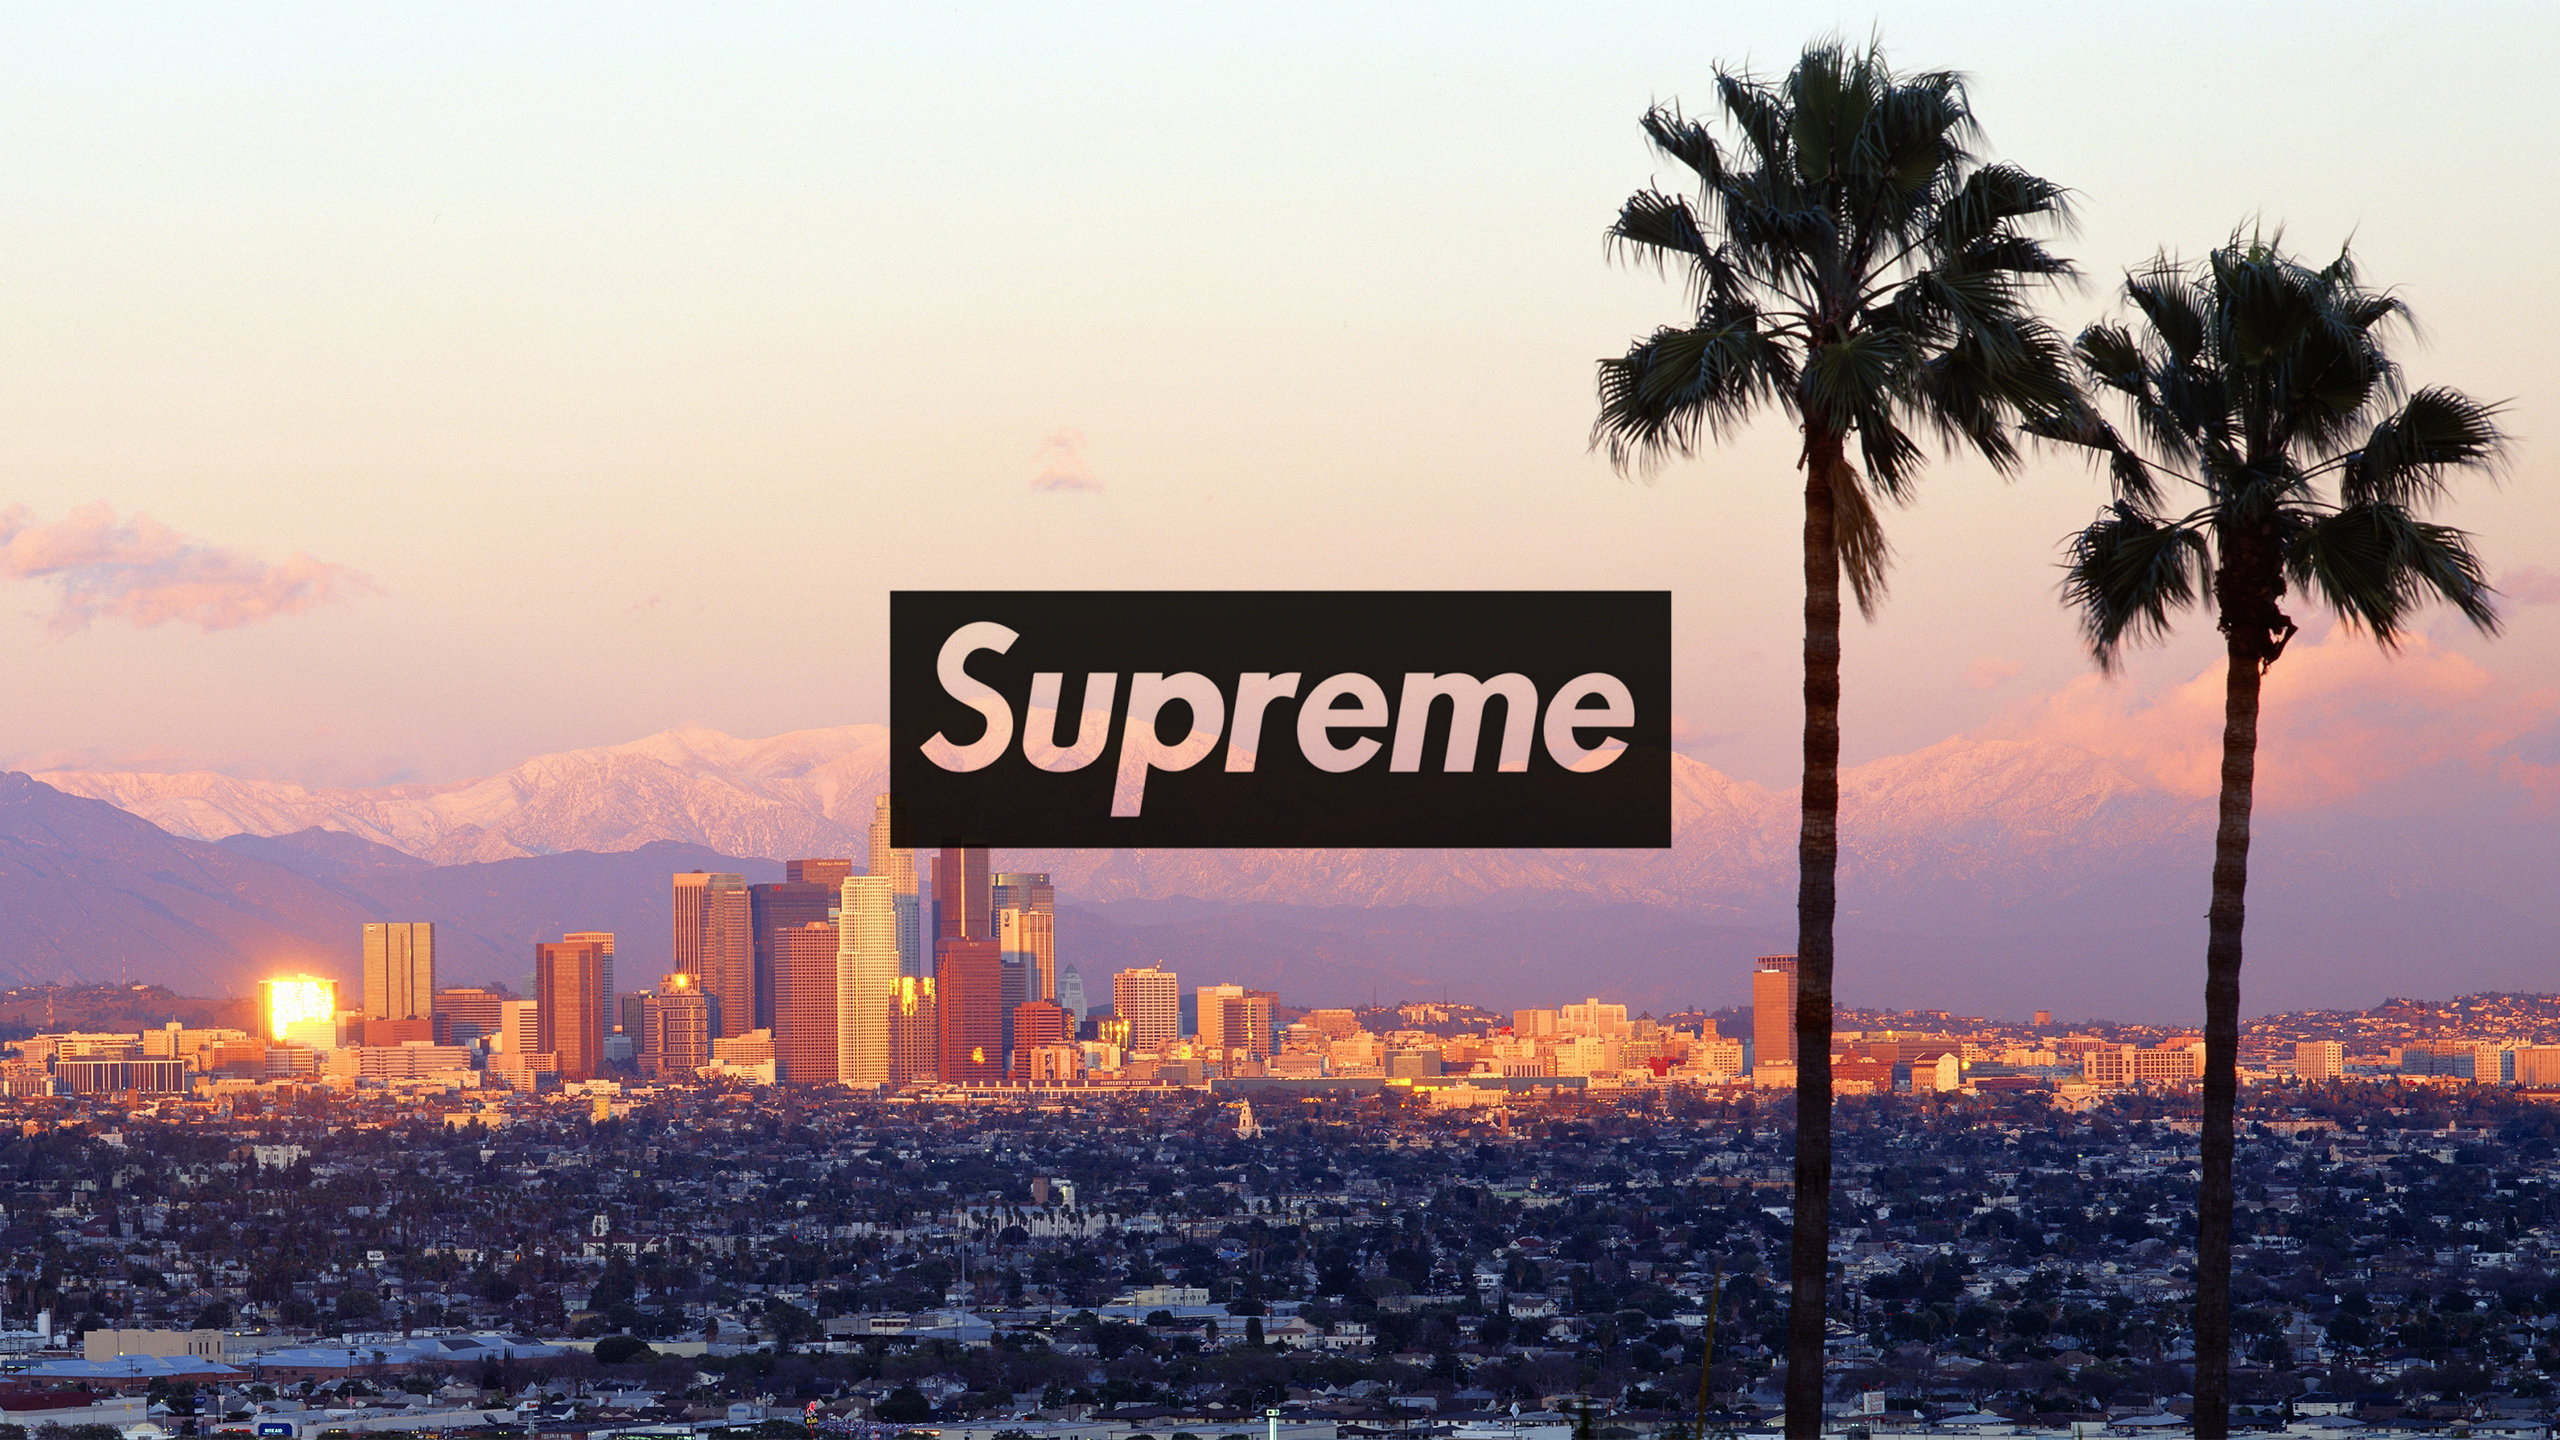 Supreme Wallpaper  73  images  2560x1440 Download the Los Angeles Supreme wallpaper below for your mobile  device  Android phones